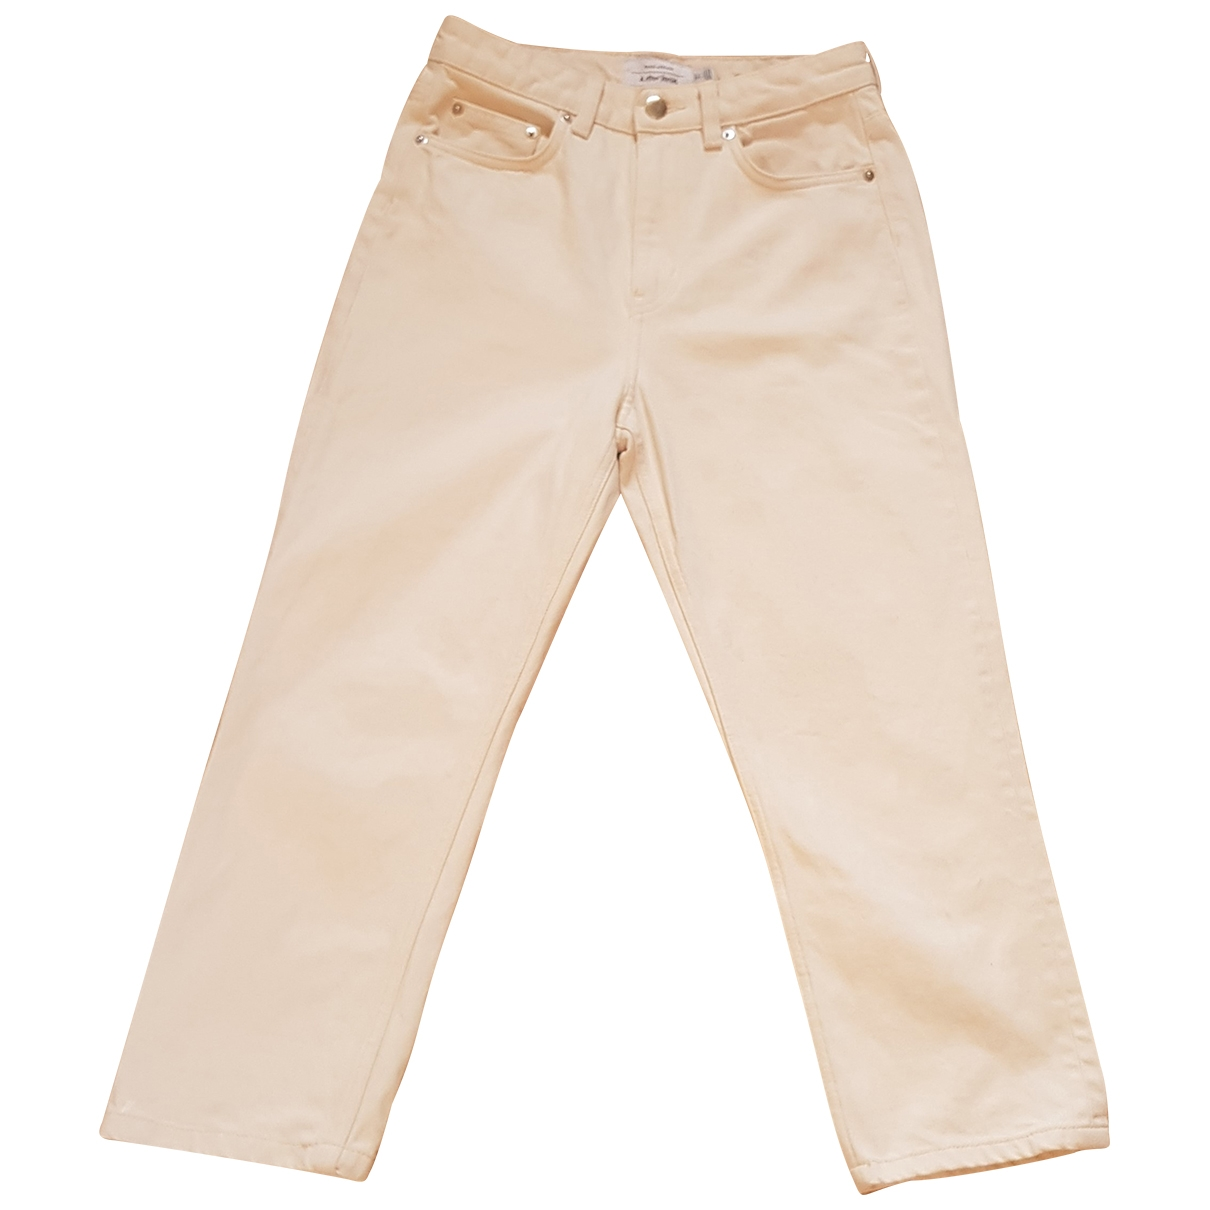 & Stories \N White Cotton Jeans for Women 27 US